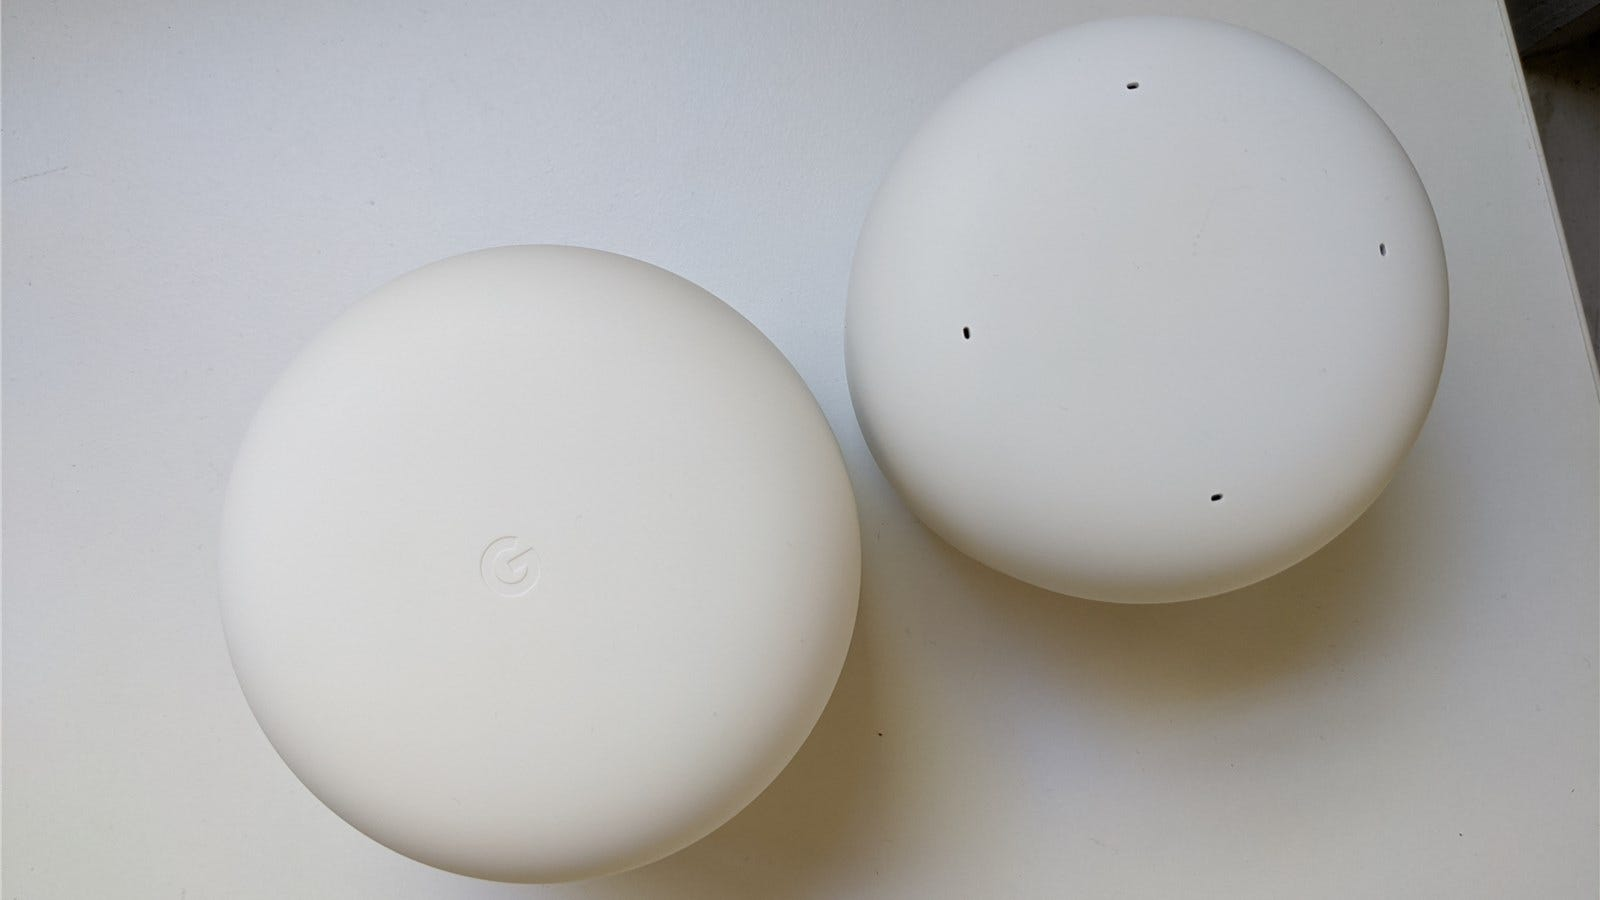 The tops of the Nest Wifi router and point